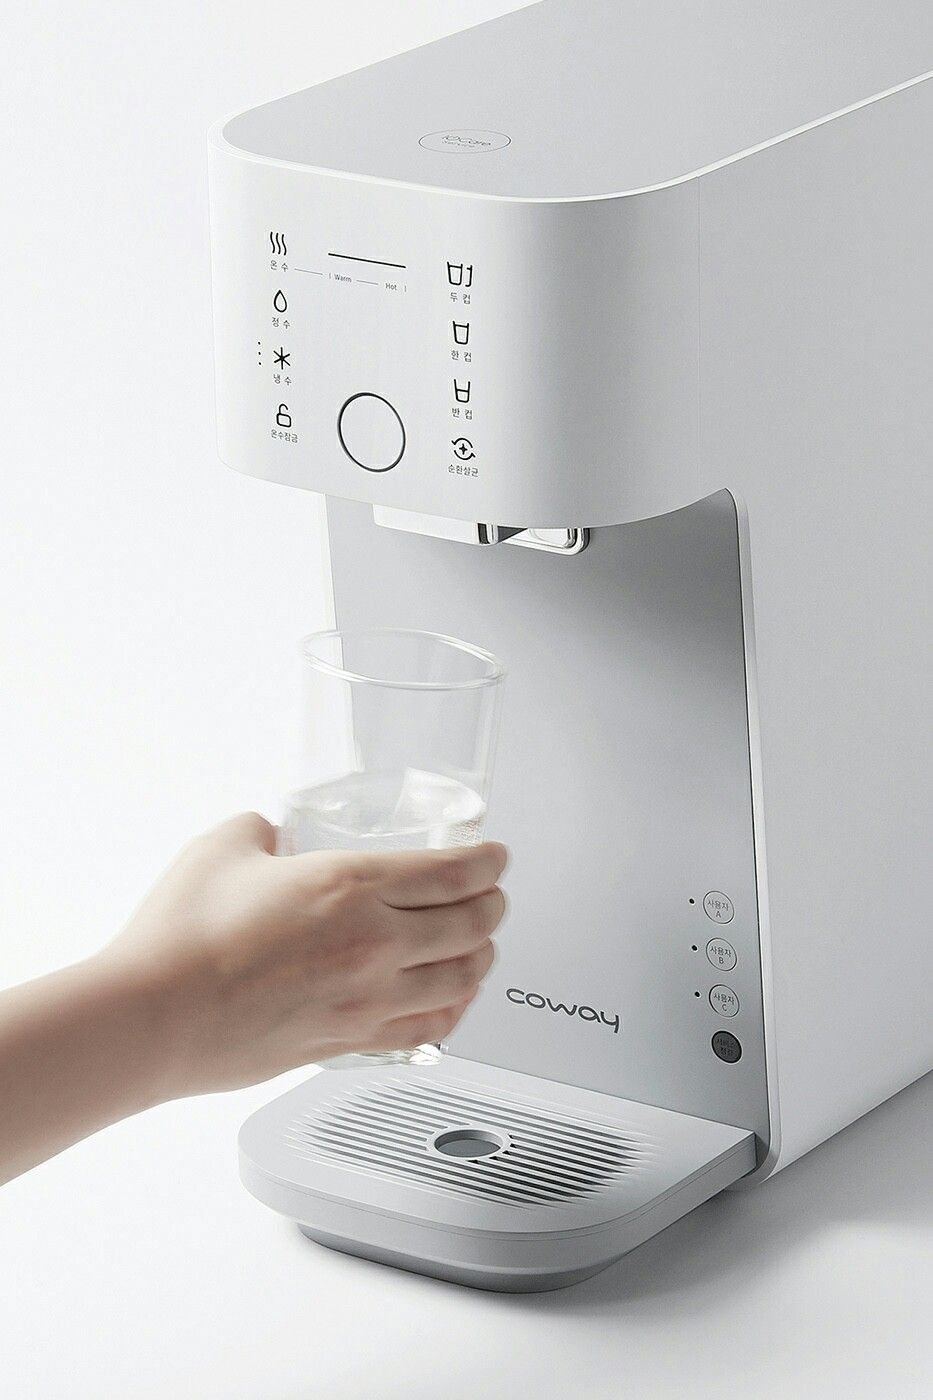 COMPACT WATER COLLECTION, LE PURIFICATEUR D'EAU DE DAEHOO